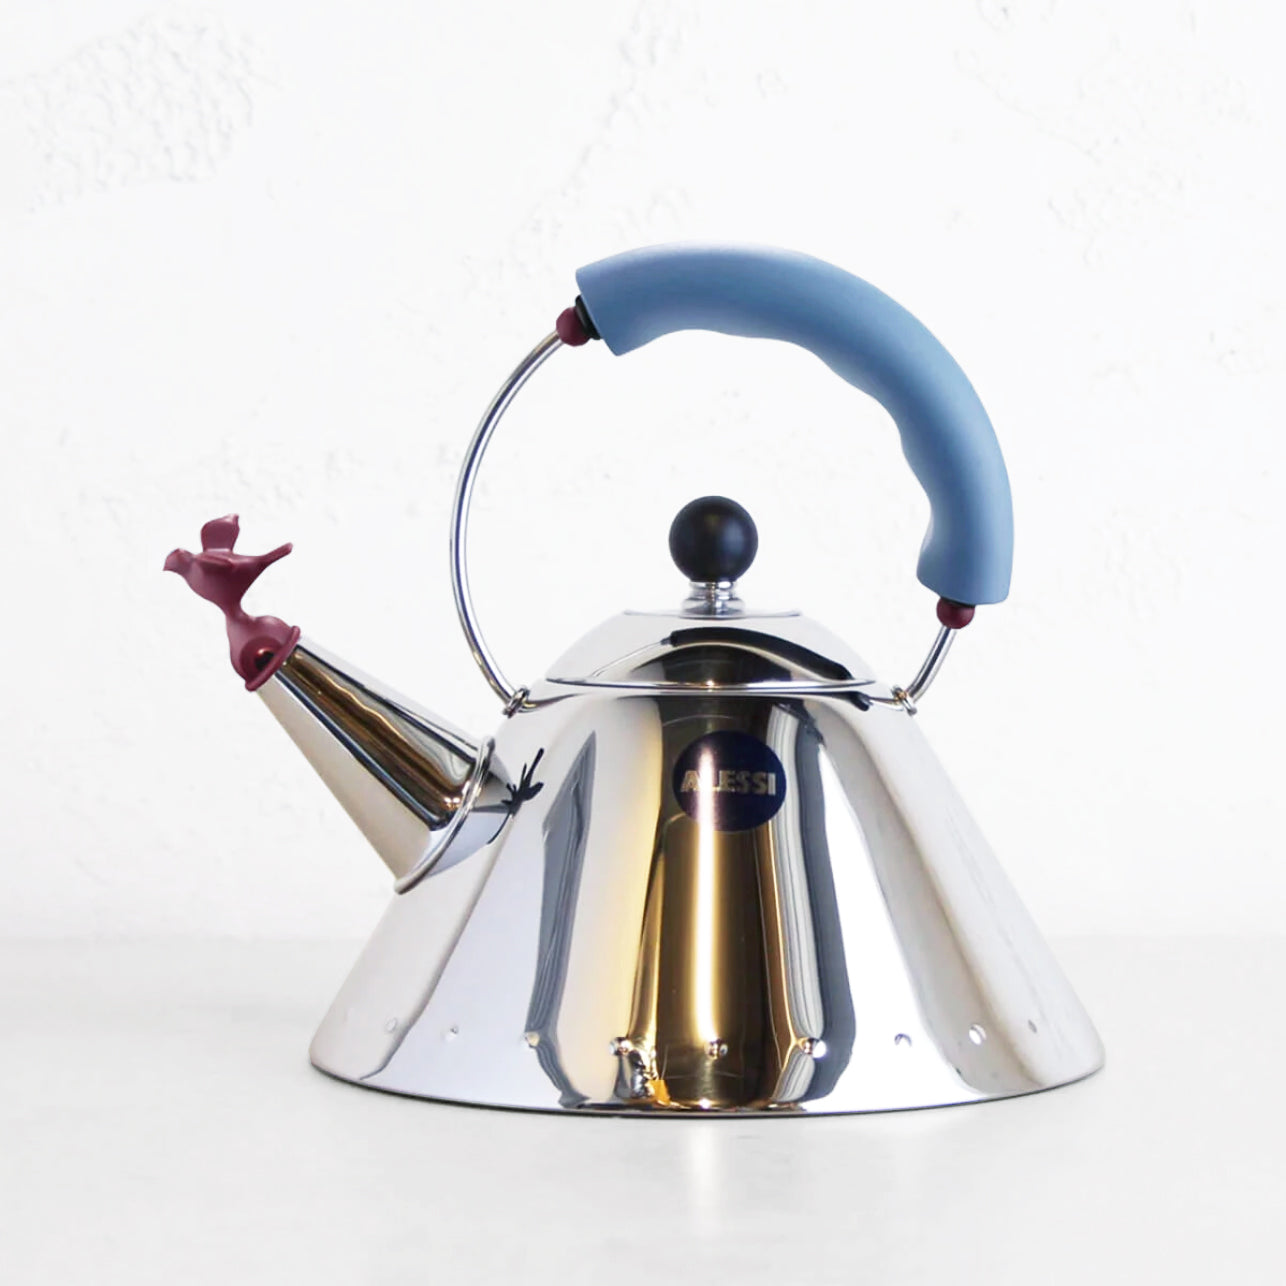 ALESSI  |  KETTLE 9093 WITH BIRD  |  BLUE HANDLE